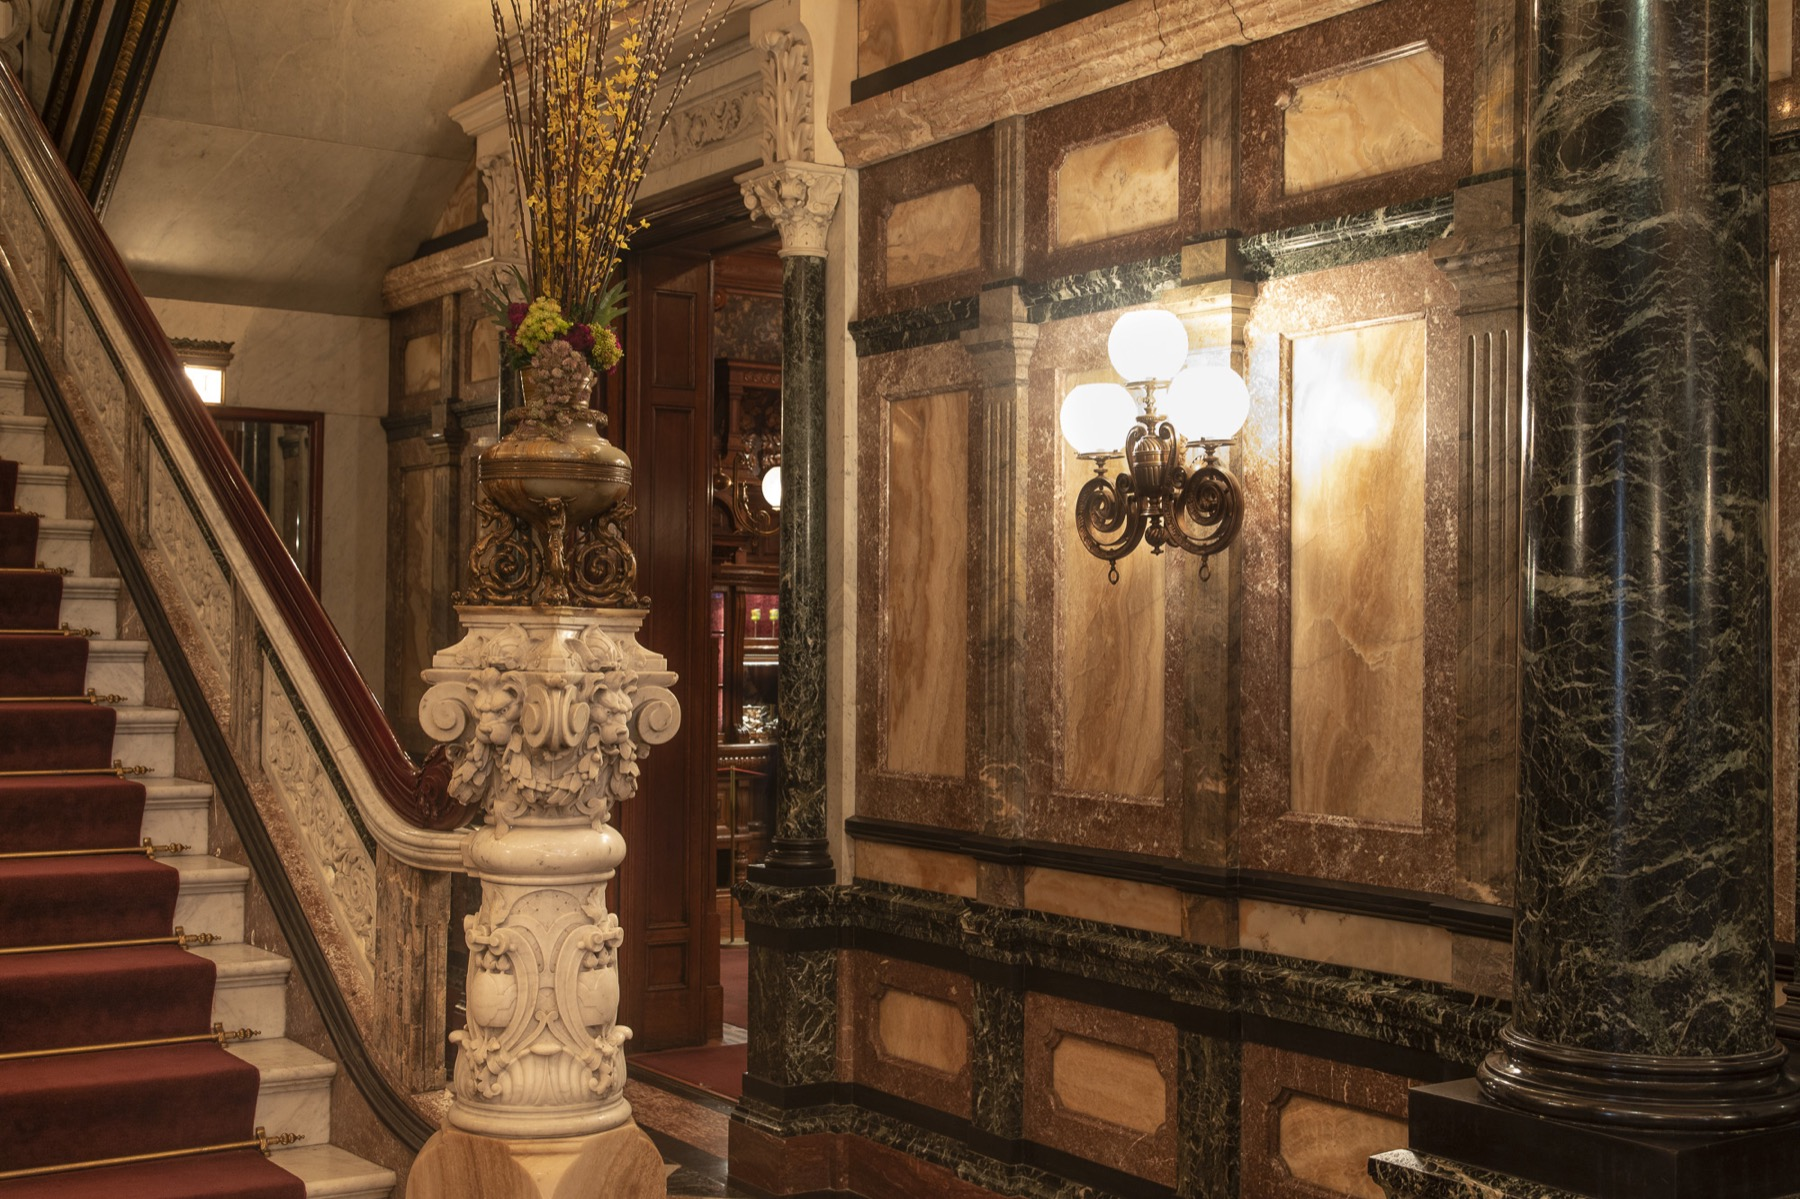 Staircase inside Driehaus Museum